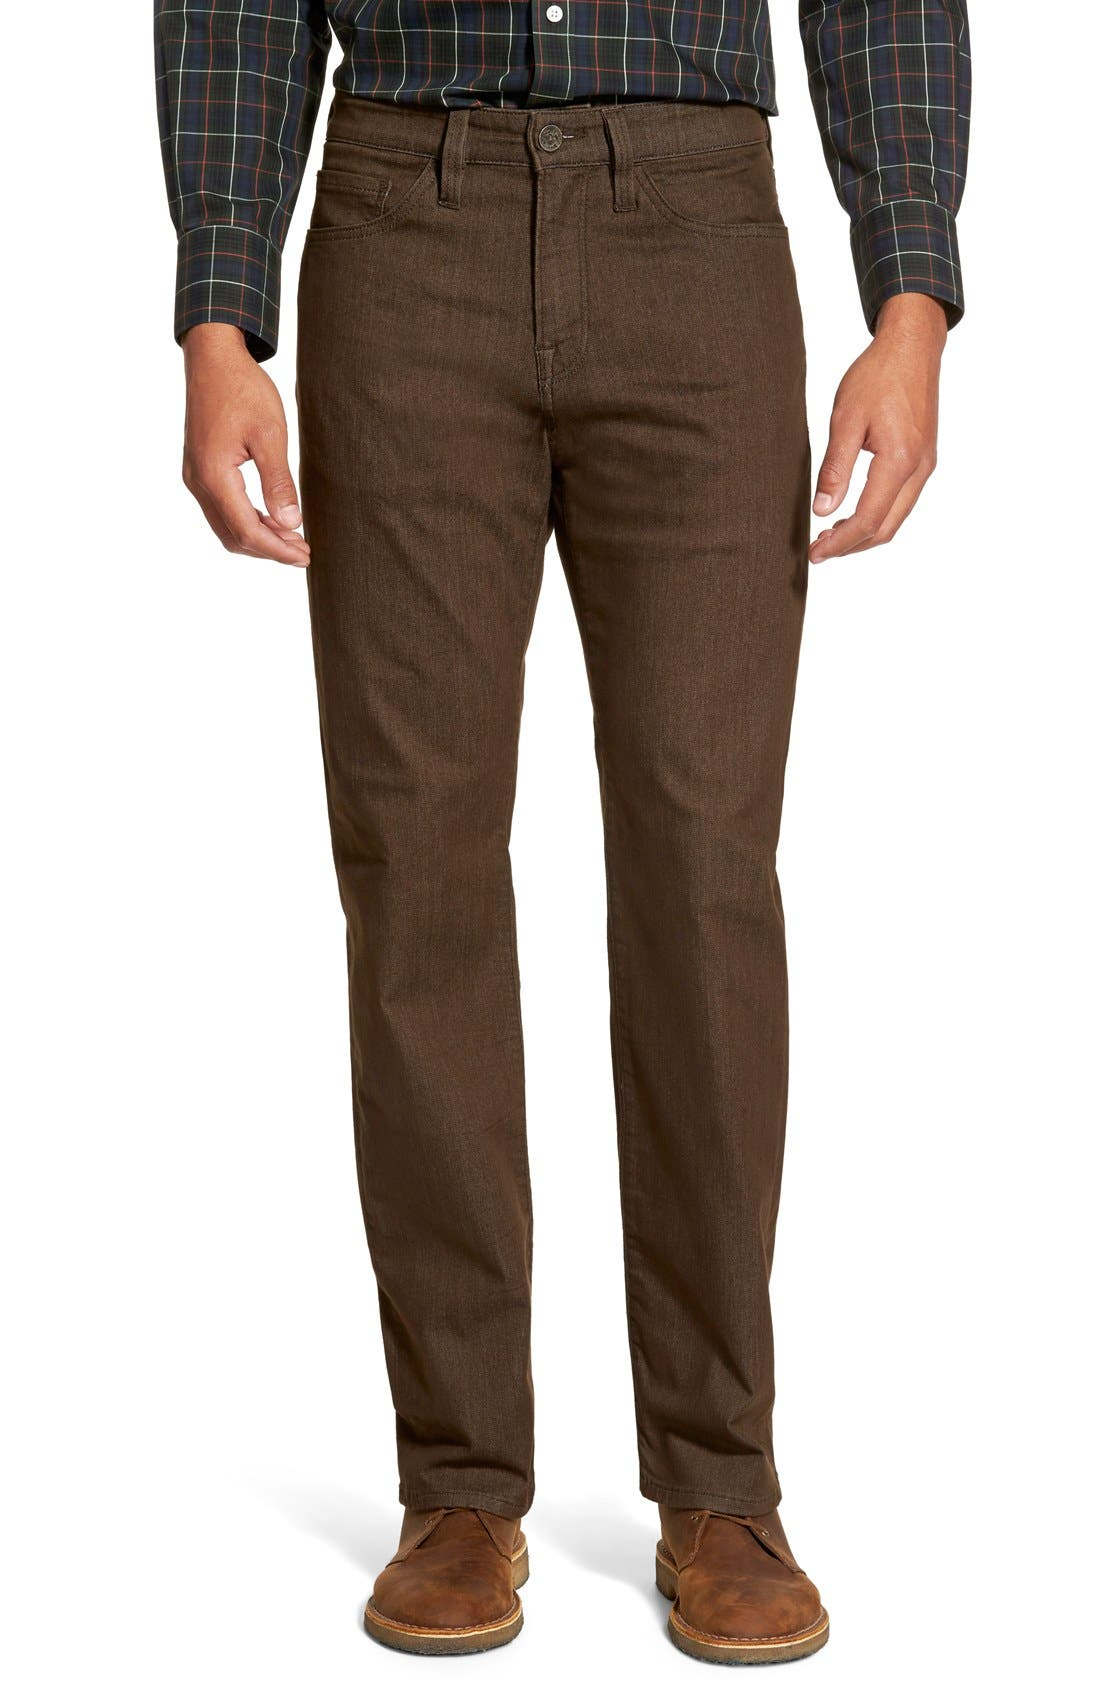 Alternate Image 1 Selected - 34 Heritage 'Charisma' Relaxed Fit Jeans (Brown Comfort) (Regular & Tall)